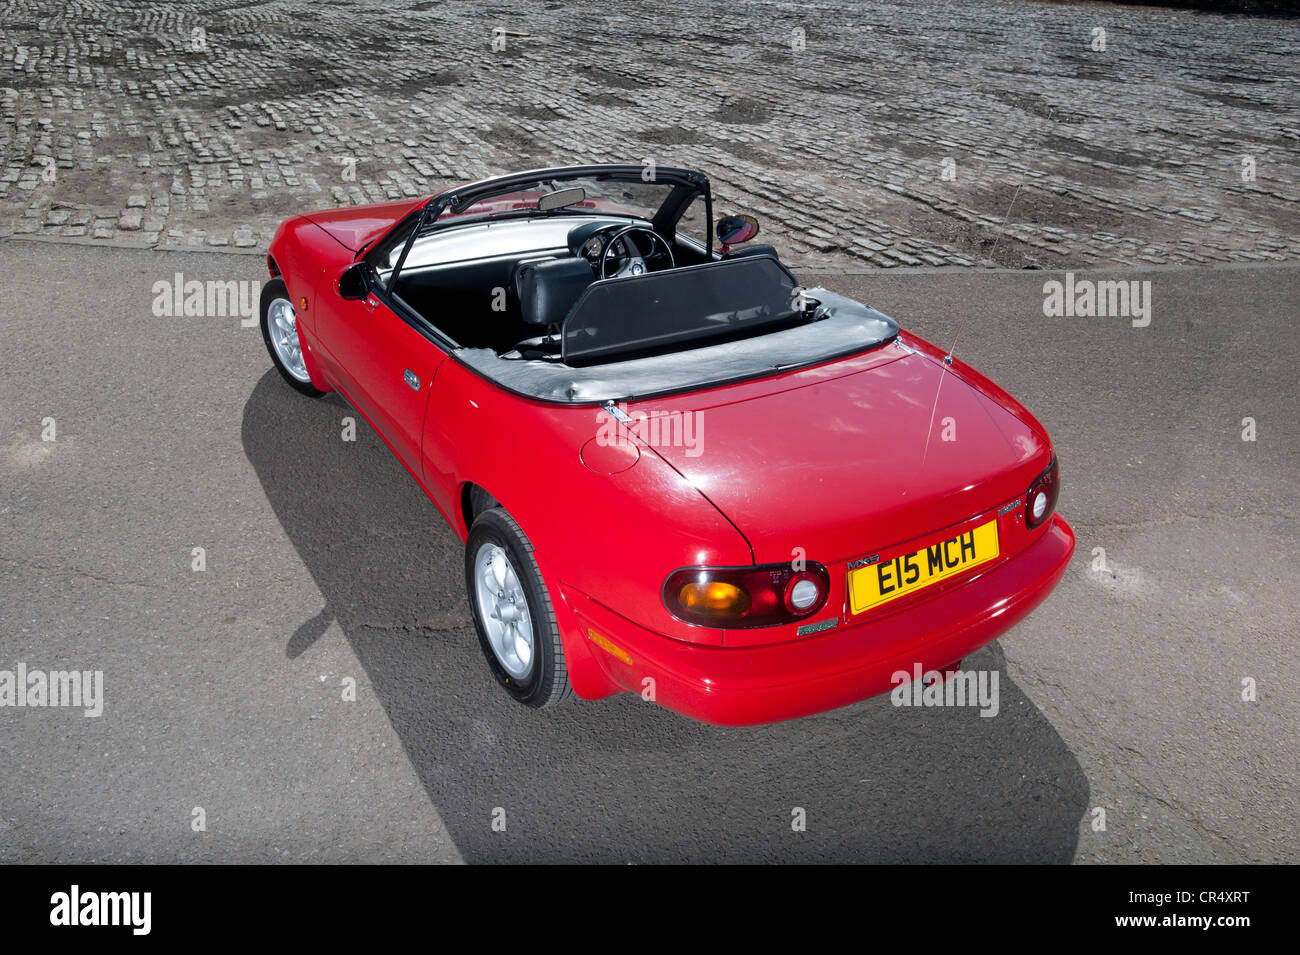 Mazda MX5 - possibly the perfect sports car? Front engine rear wheel and affordable - Stock Image